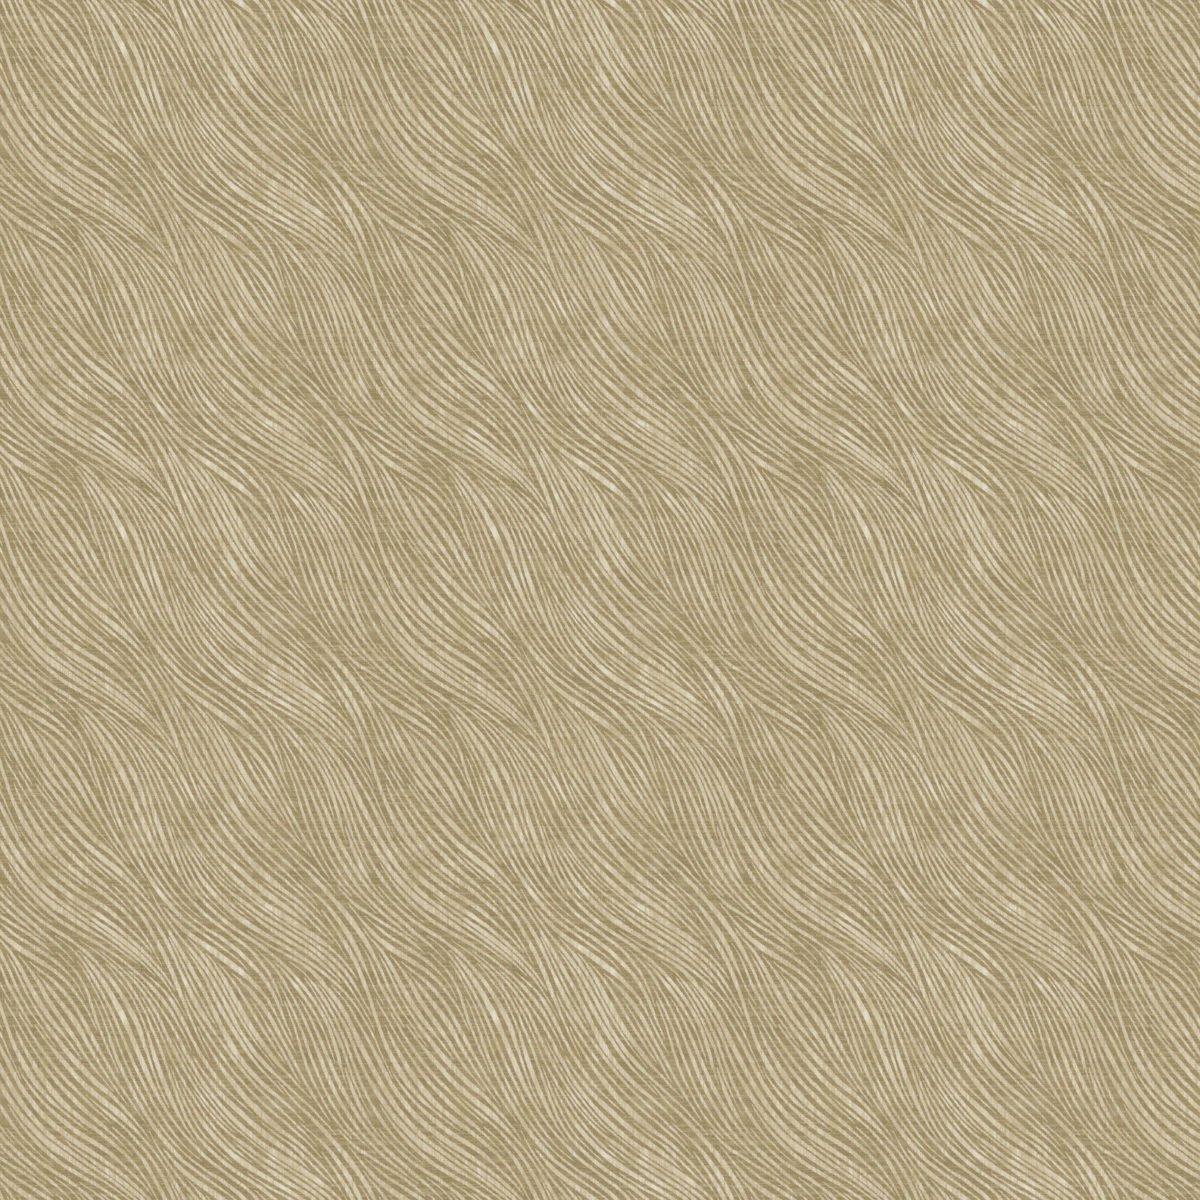 Serenity Lined Waves - Taupe